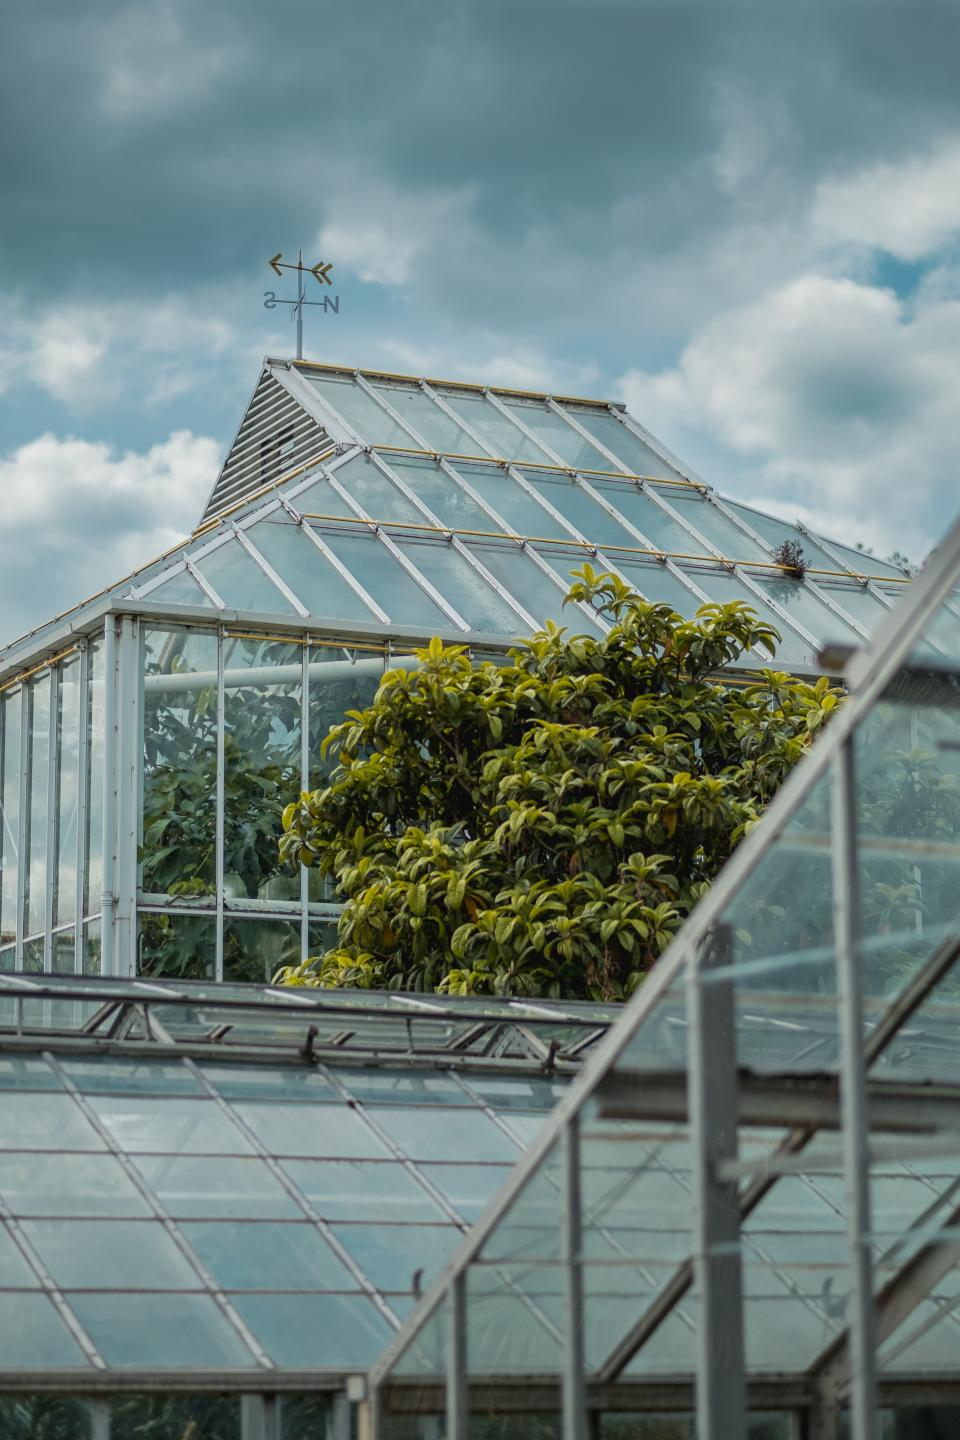 greenhouse plants nature structure glass building clouds sky